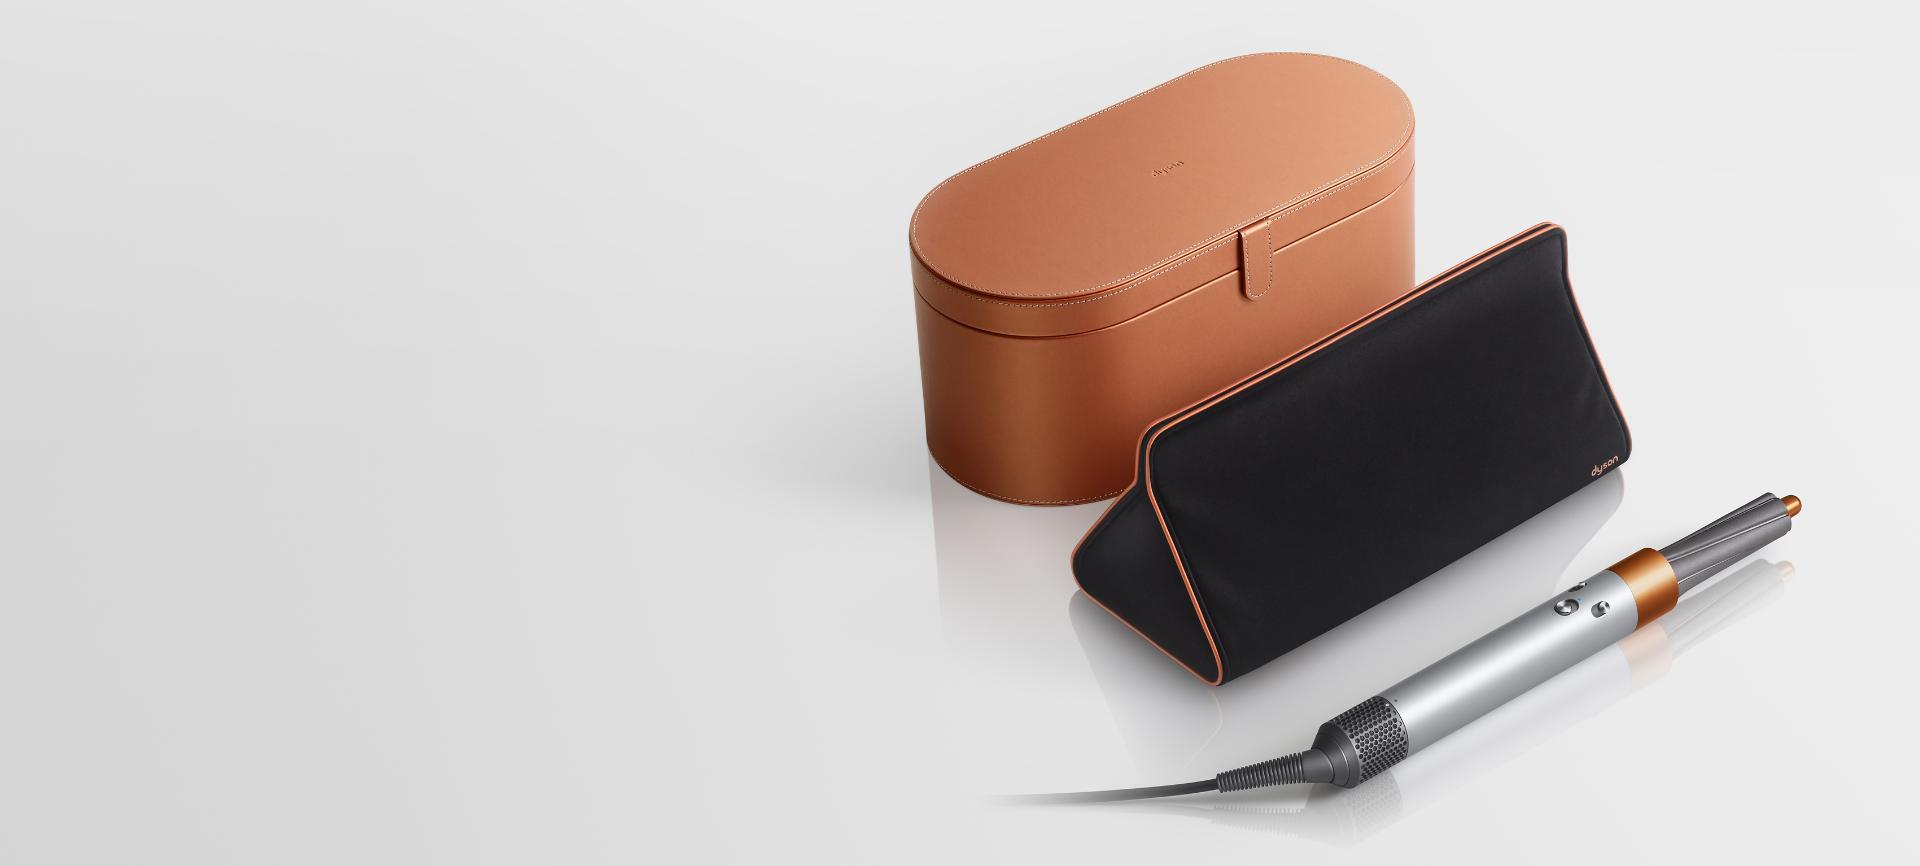 Copper Dyson Airwrap styler with presentation case and storage bag